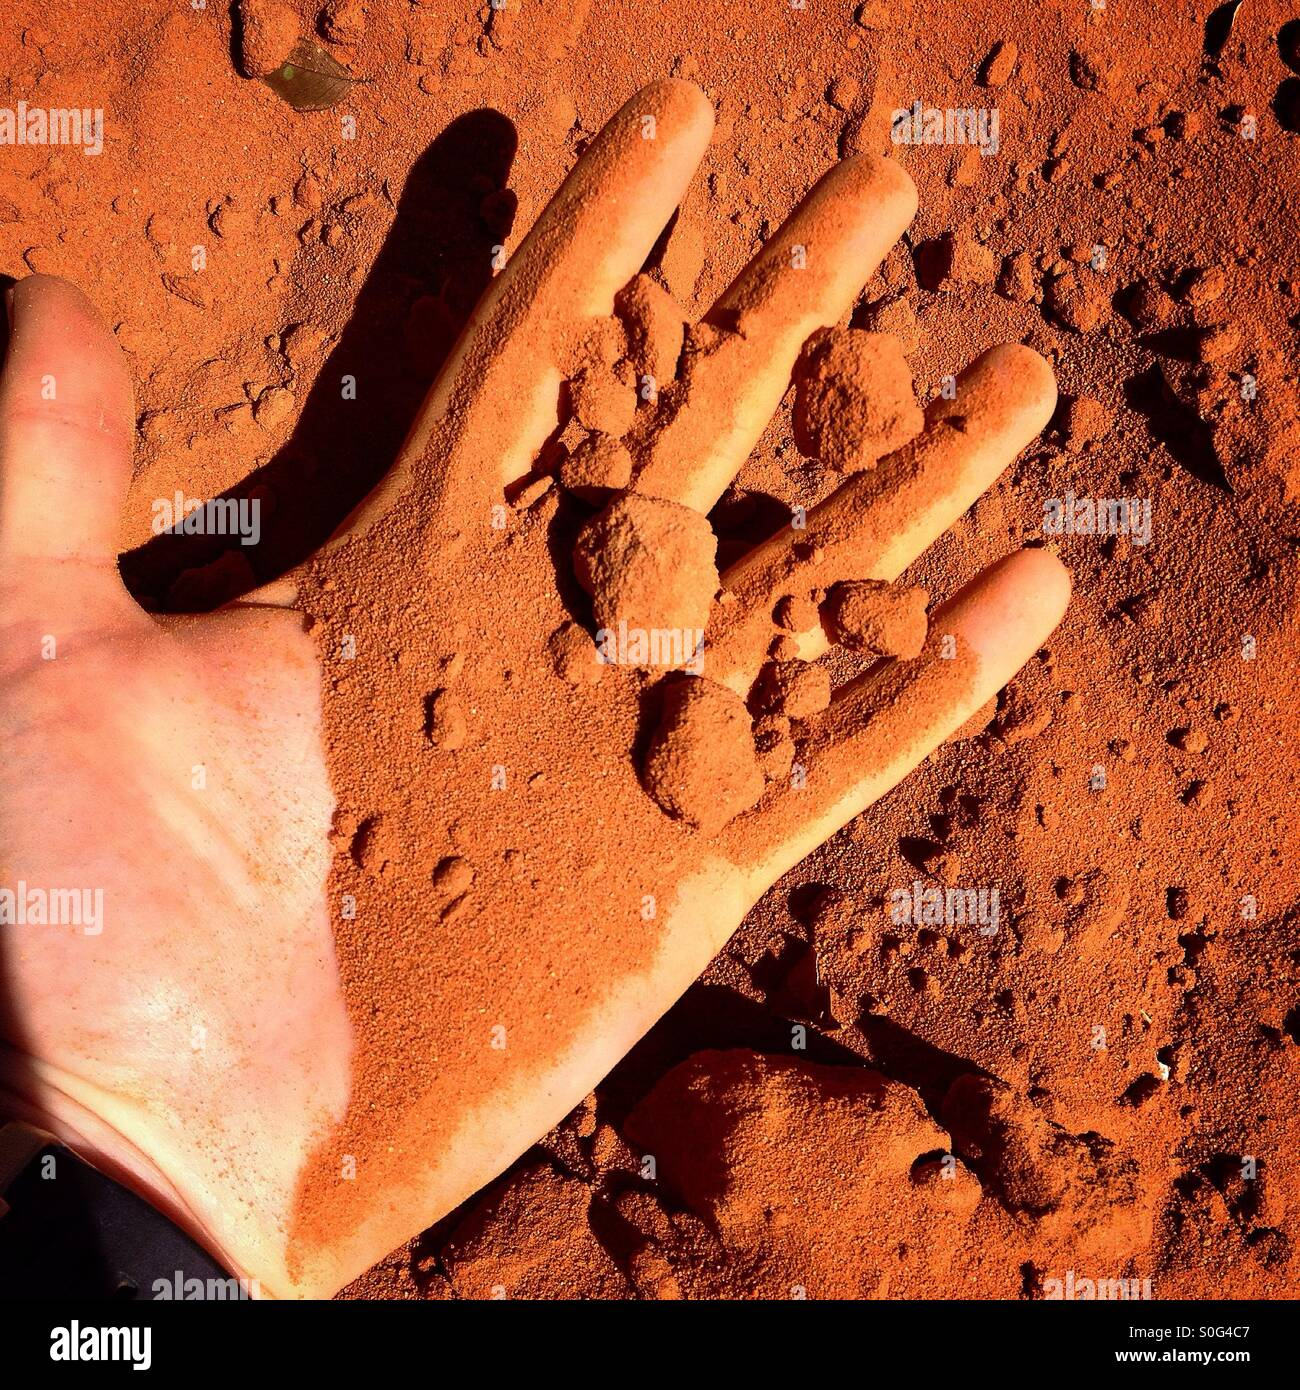 Red dirt of Australia. The red colour is due to the dry oxidising ...